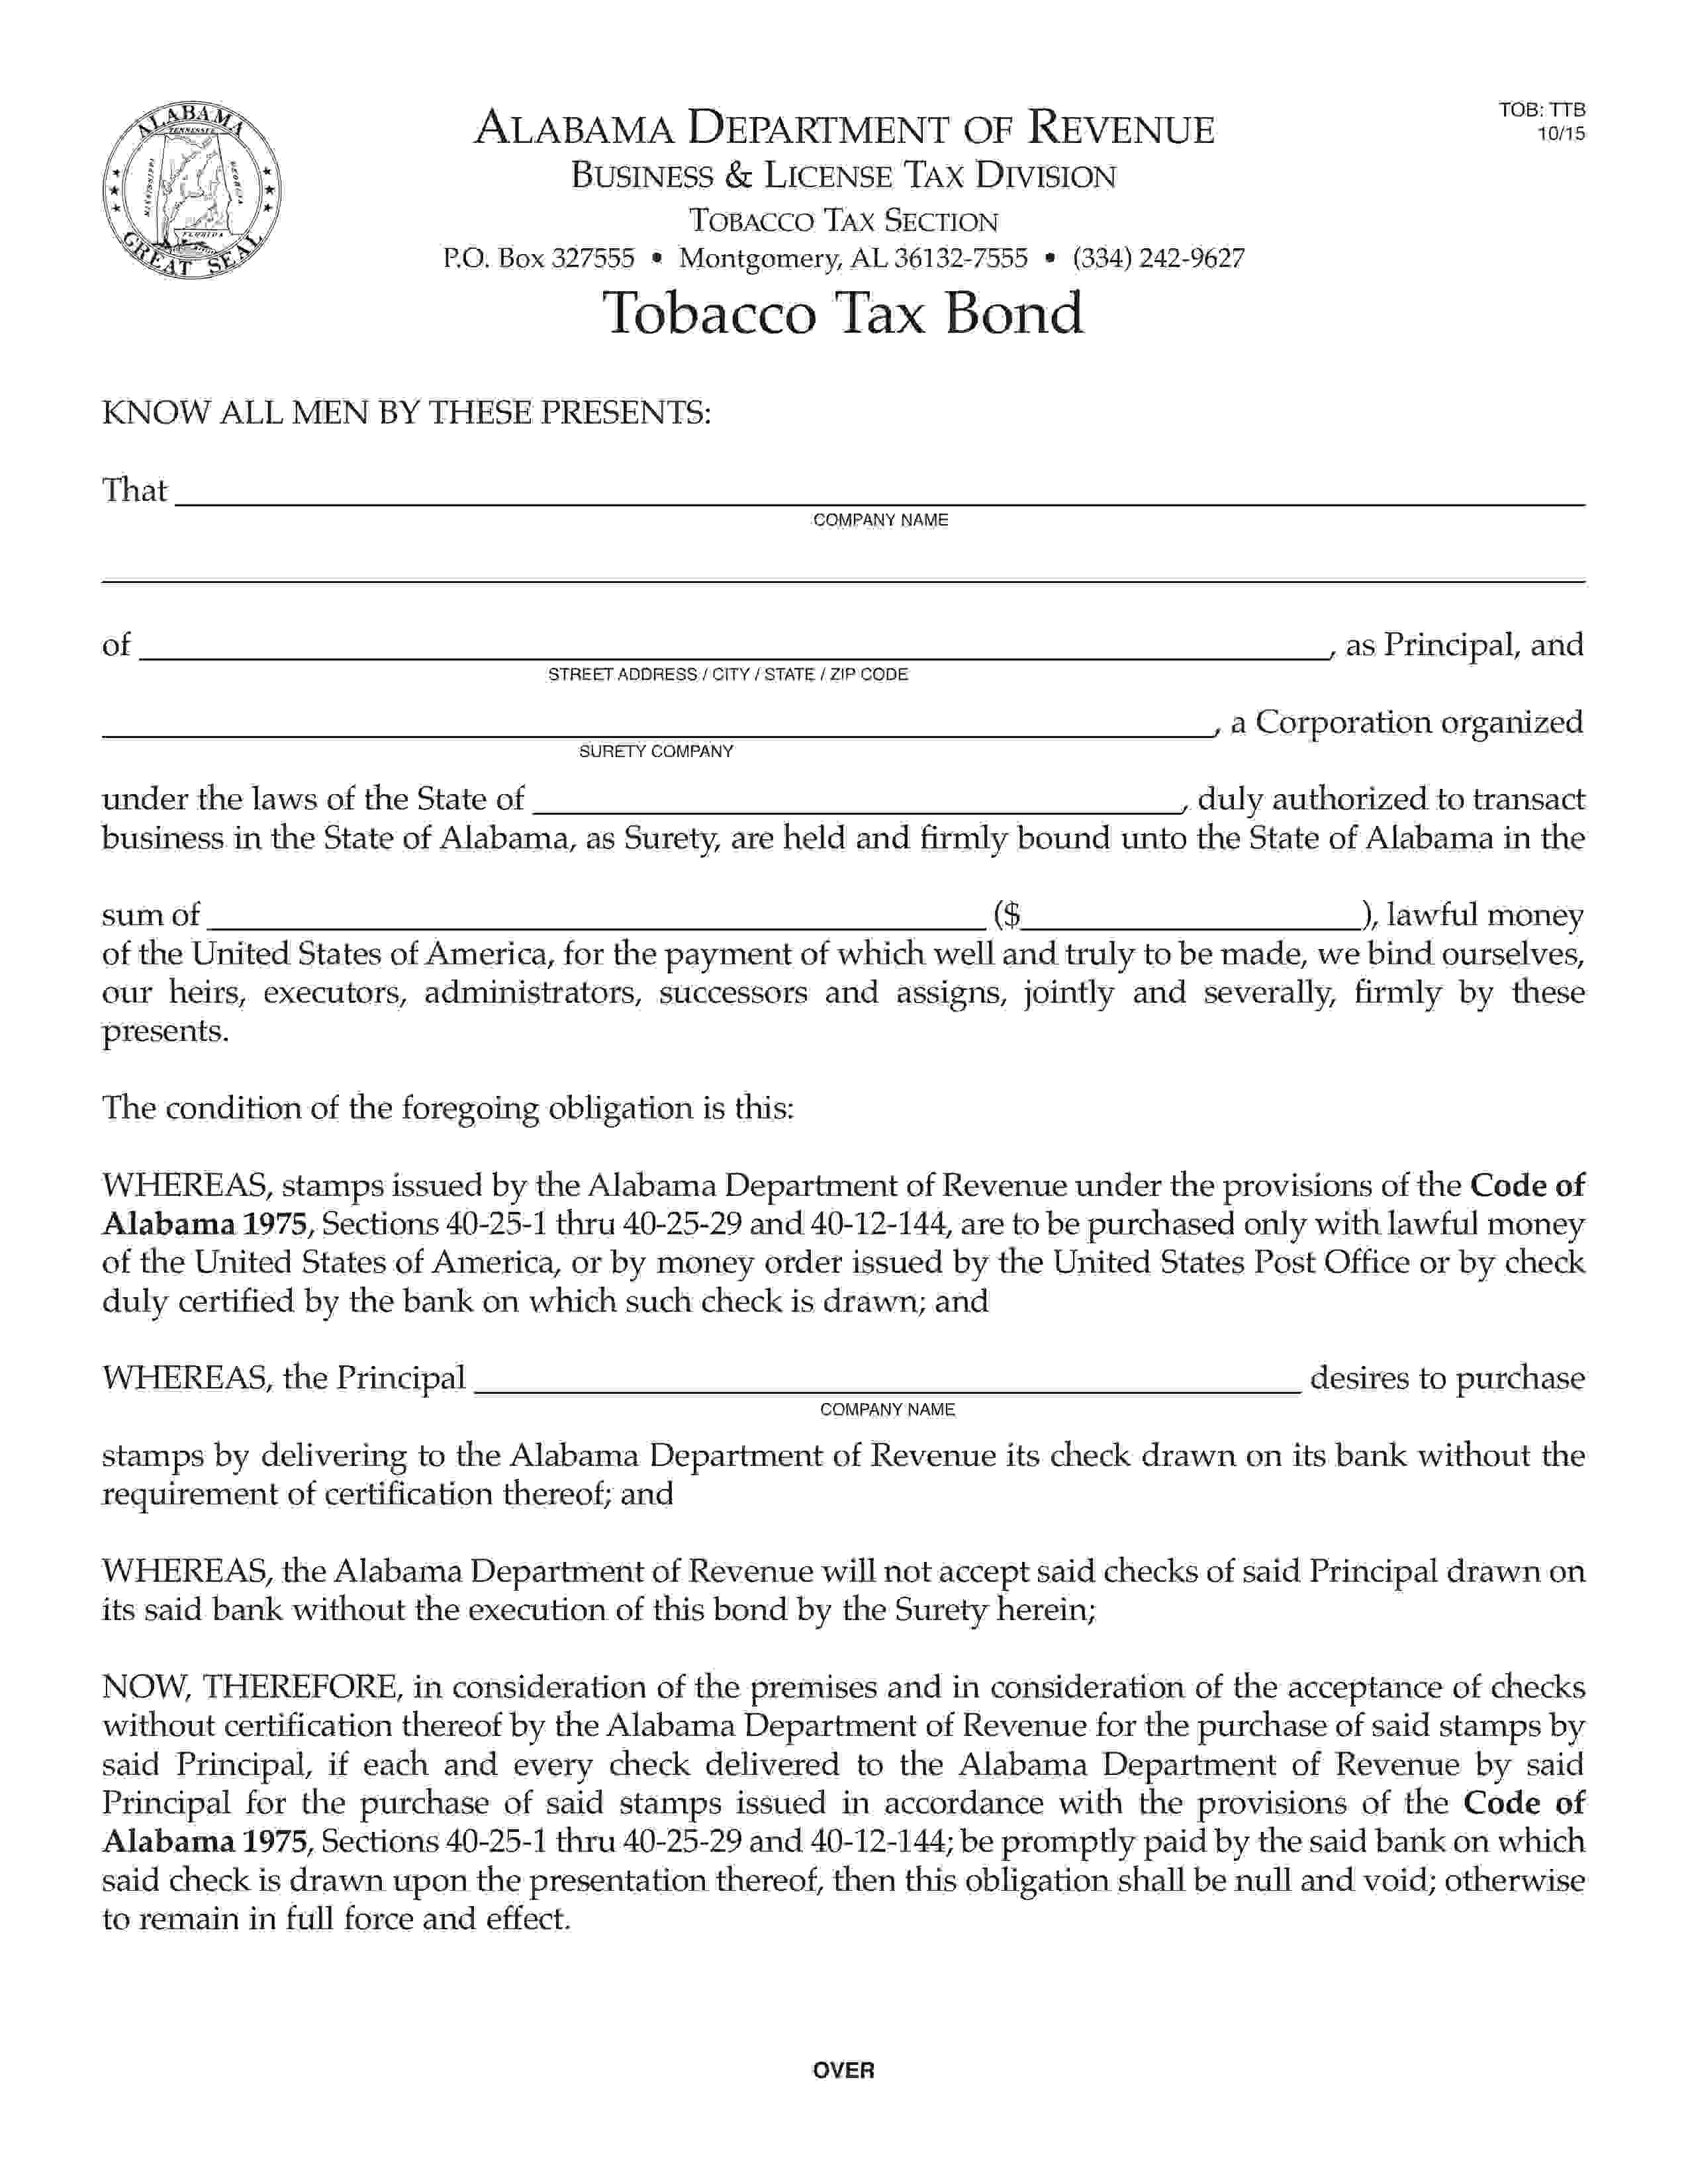 Alabama Department of Revenue Playing Cards Tax / Tobacco Tax sample image